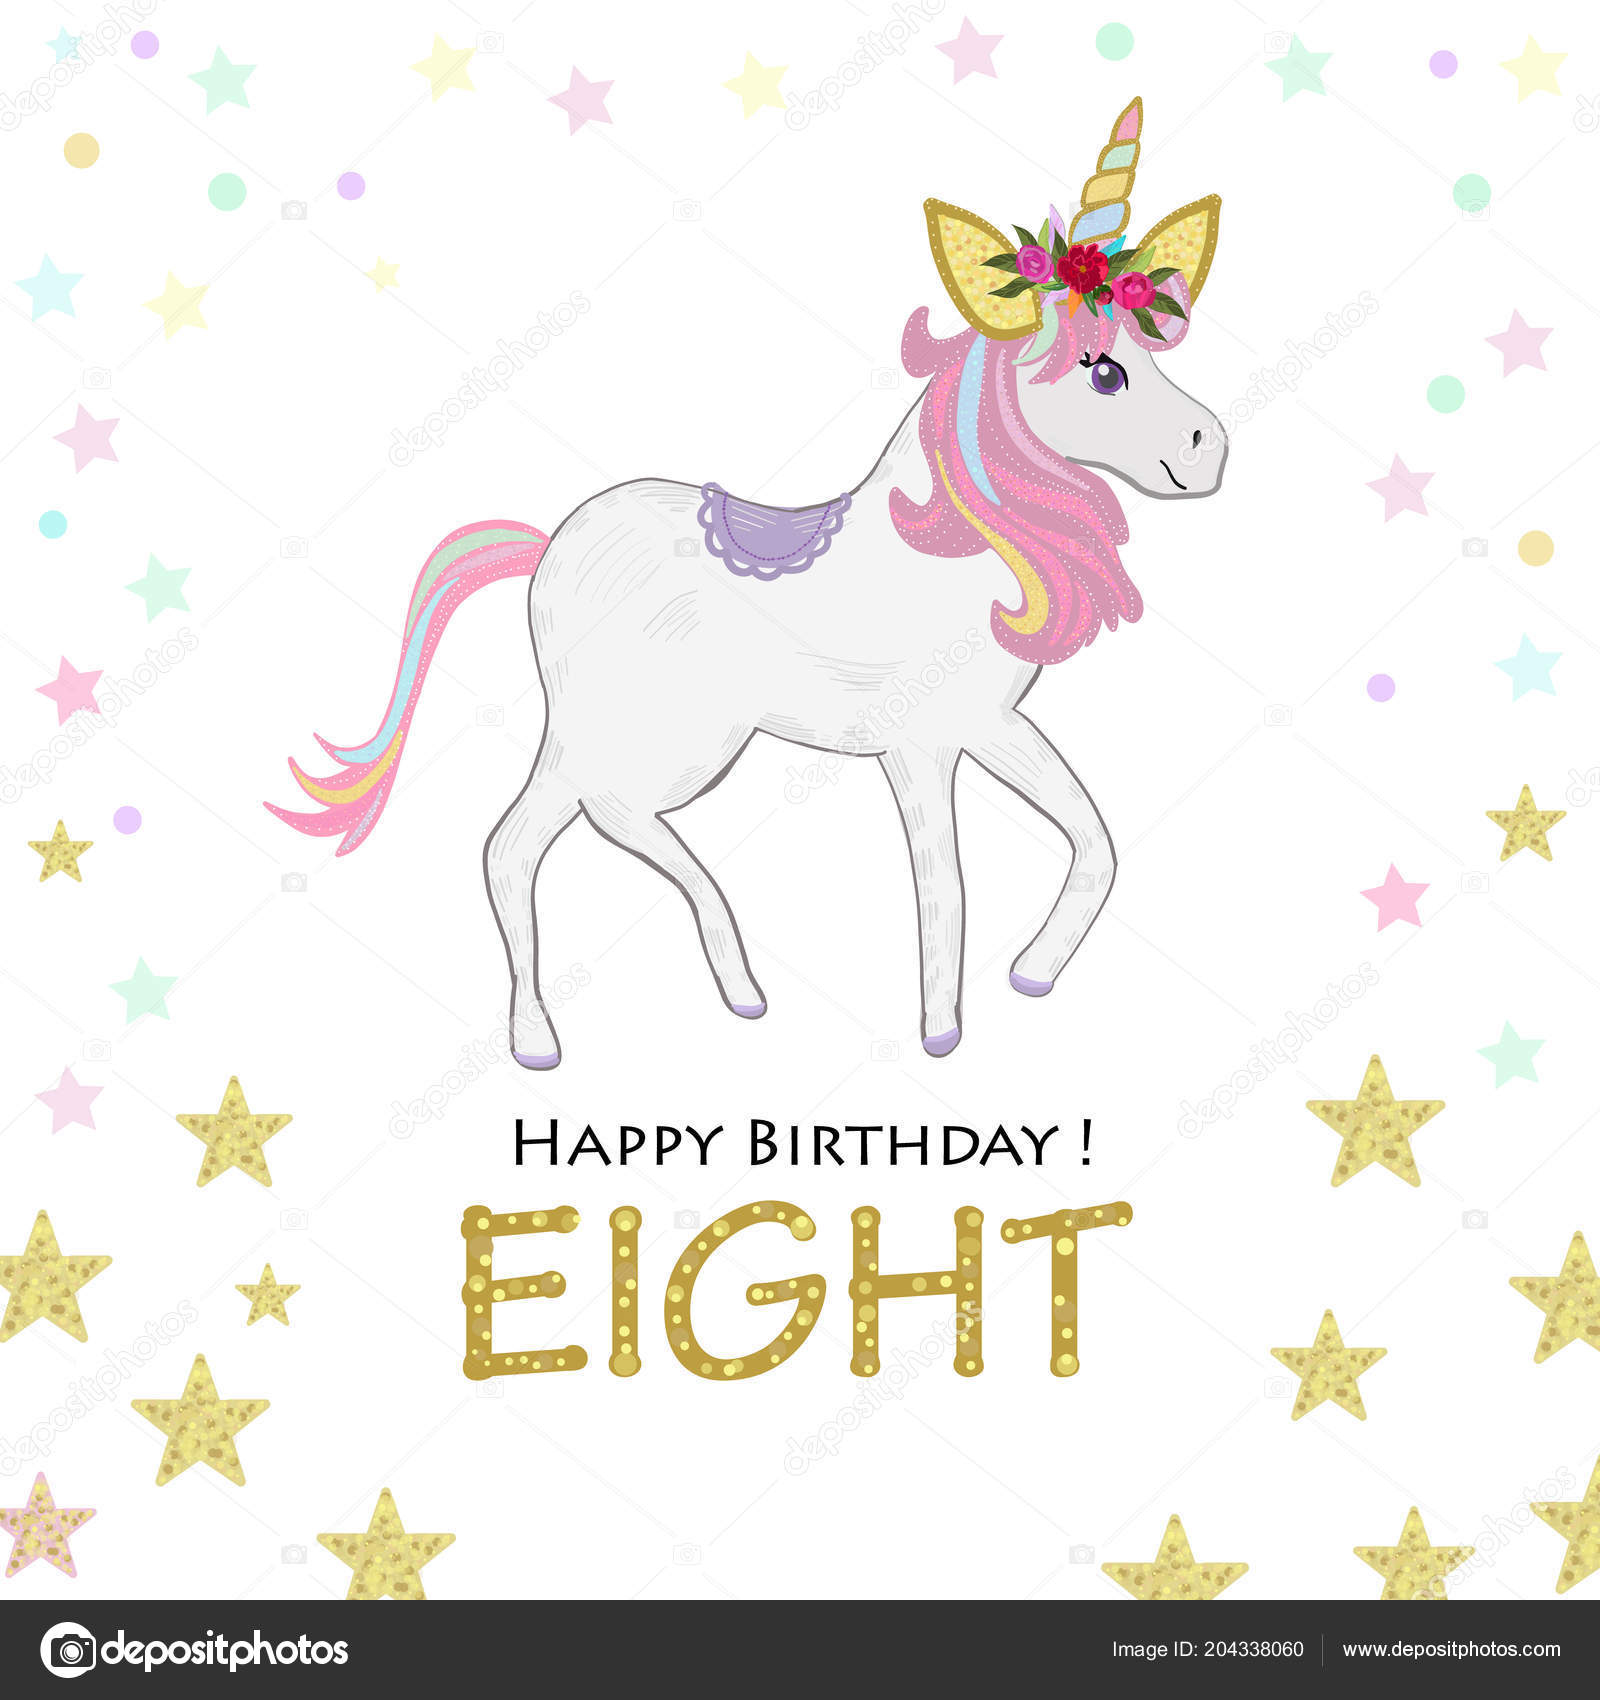 Eighth birthday greeting eigt magical unicorn birthday invitation eighth birthday greeting eigt magical unicorn birthday invitation party invitation greeting card vetor por gulsengunel stopboris Choice Image